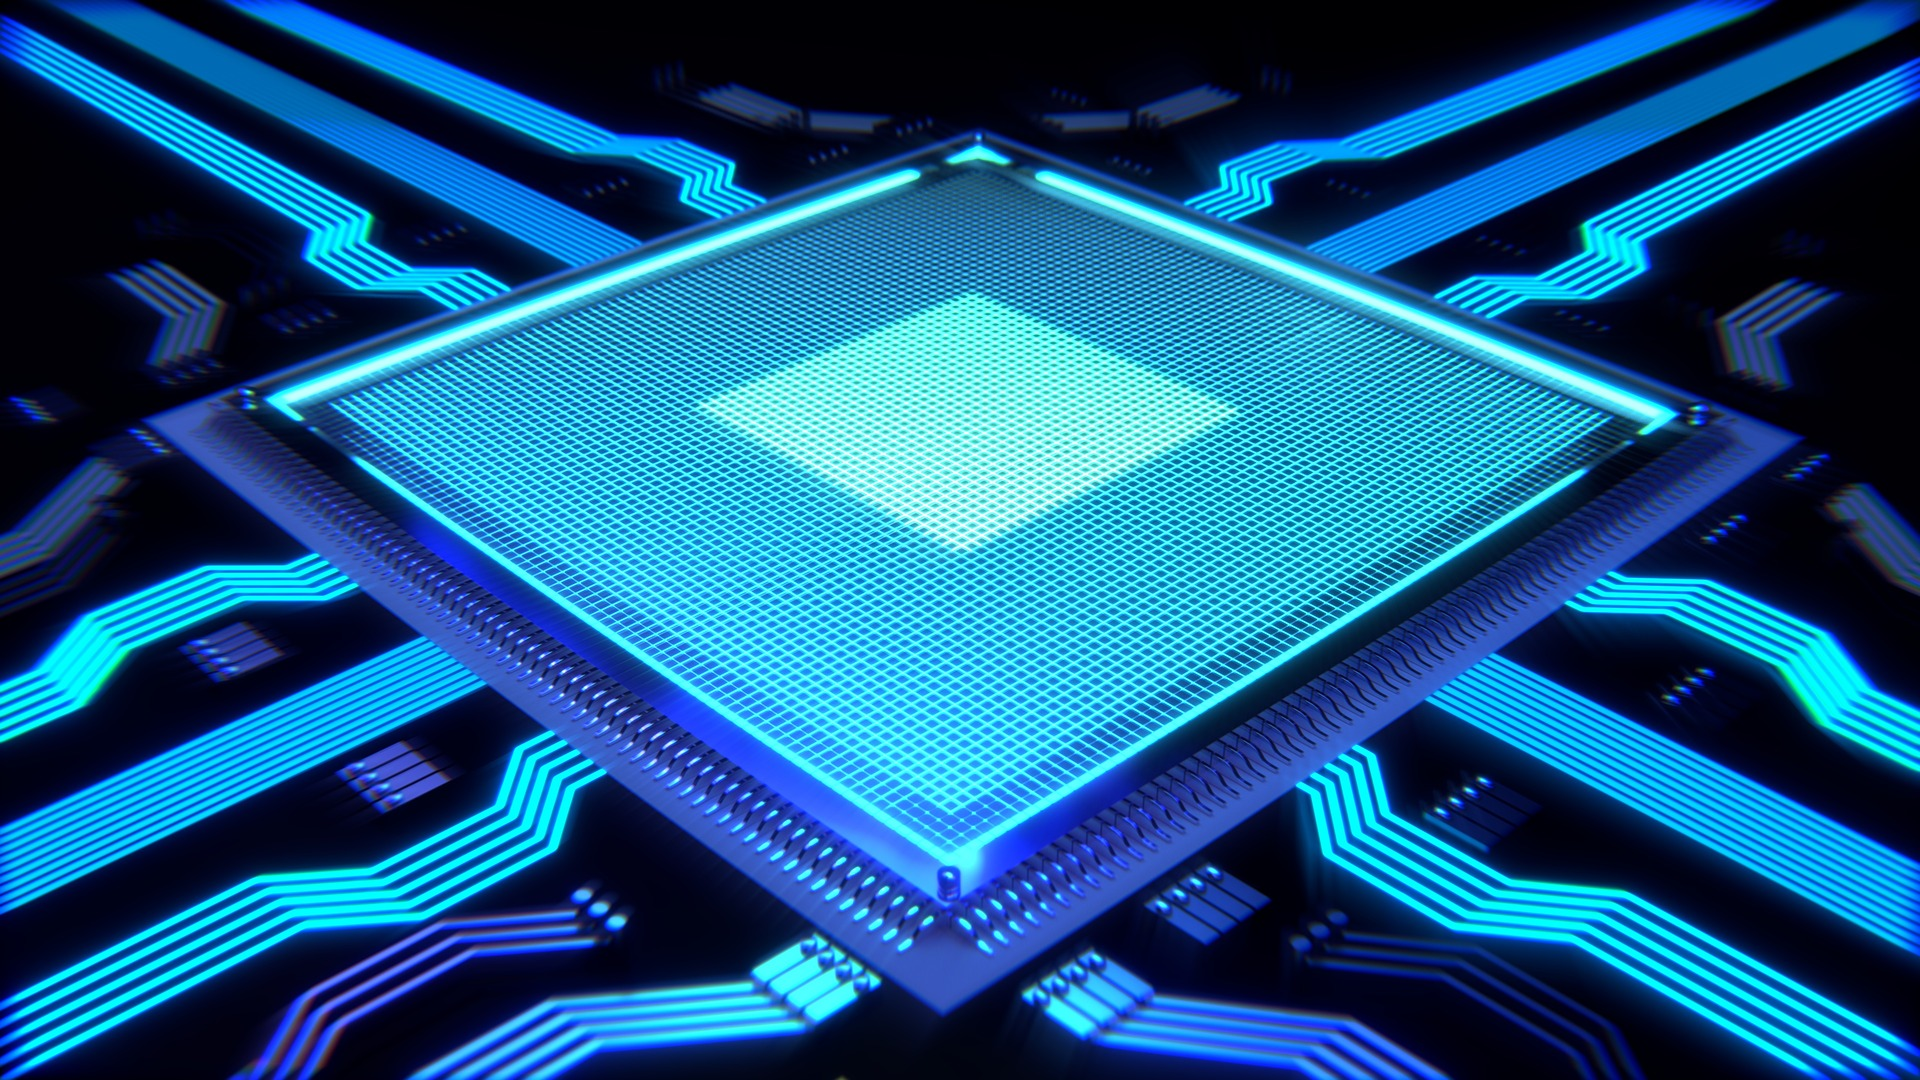 Former Mac boss predicts PC makers will have to dump AMD and Intel to 'go ARM'